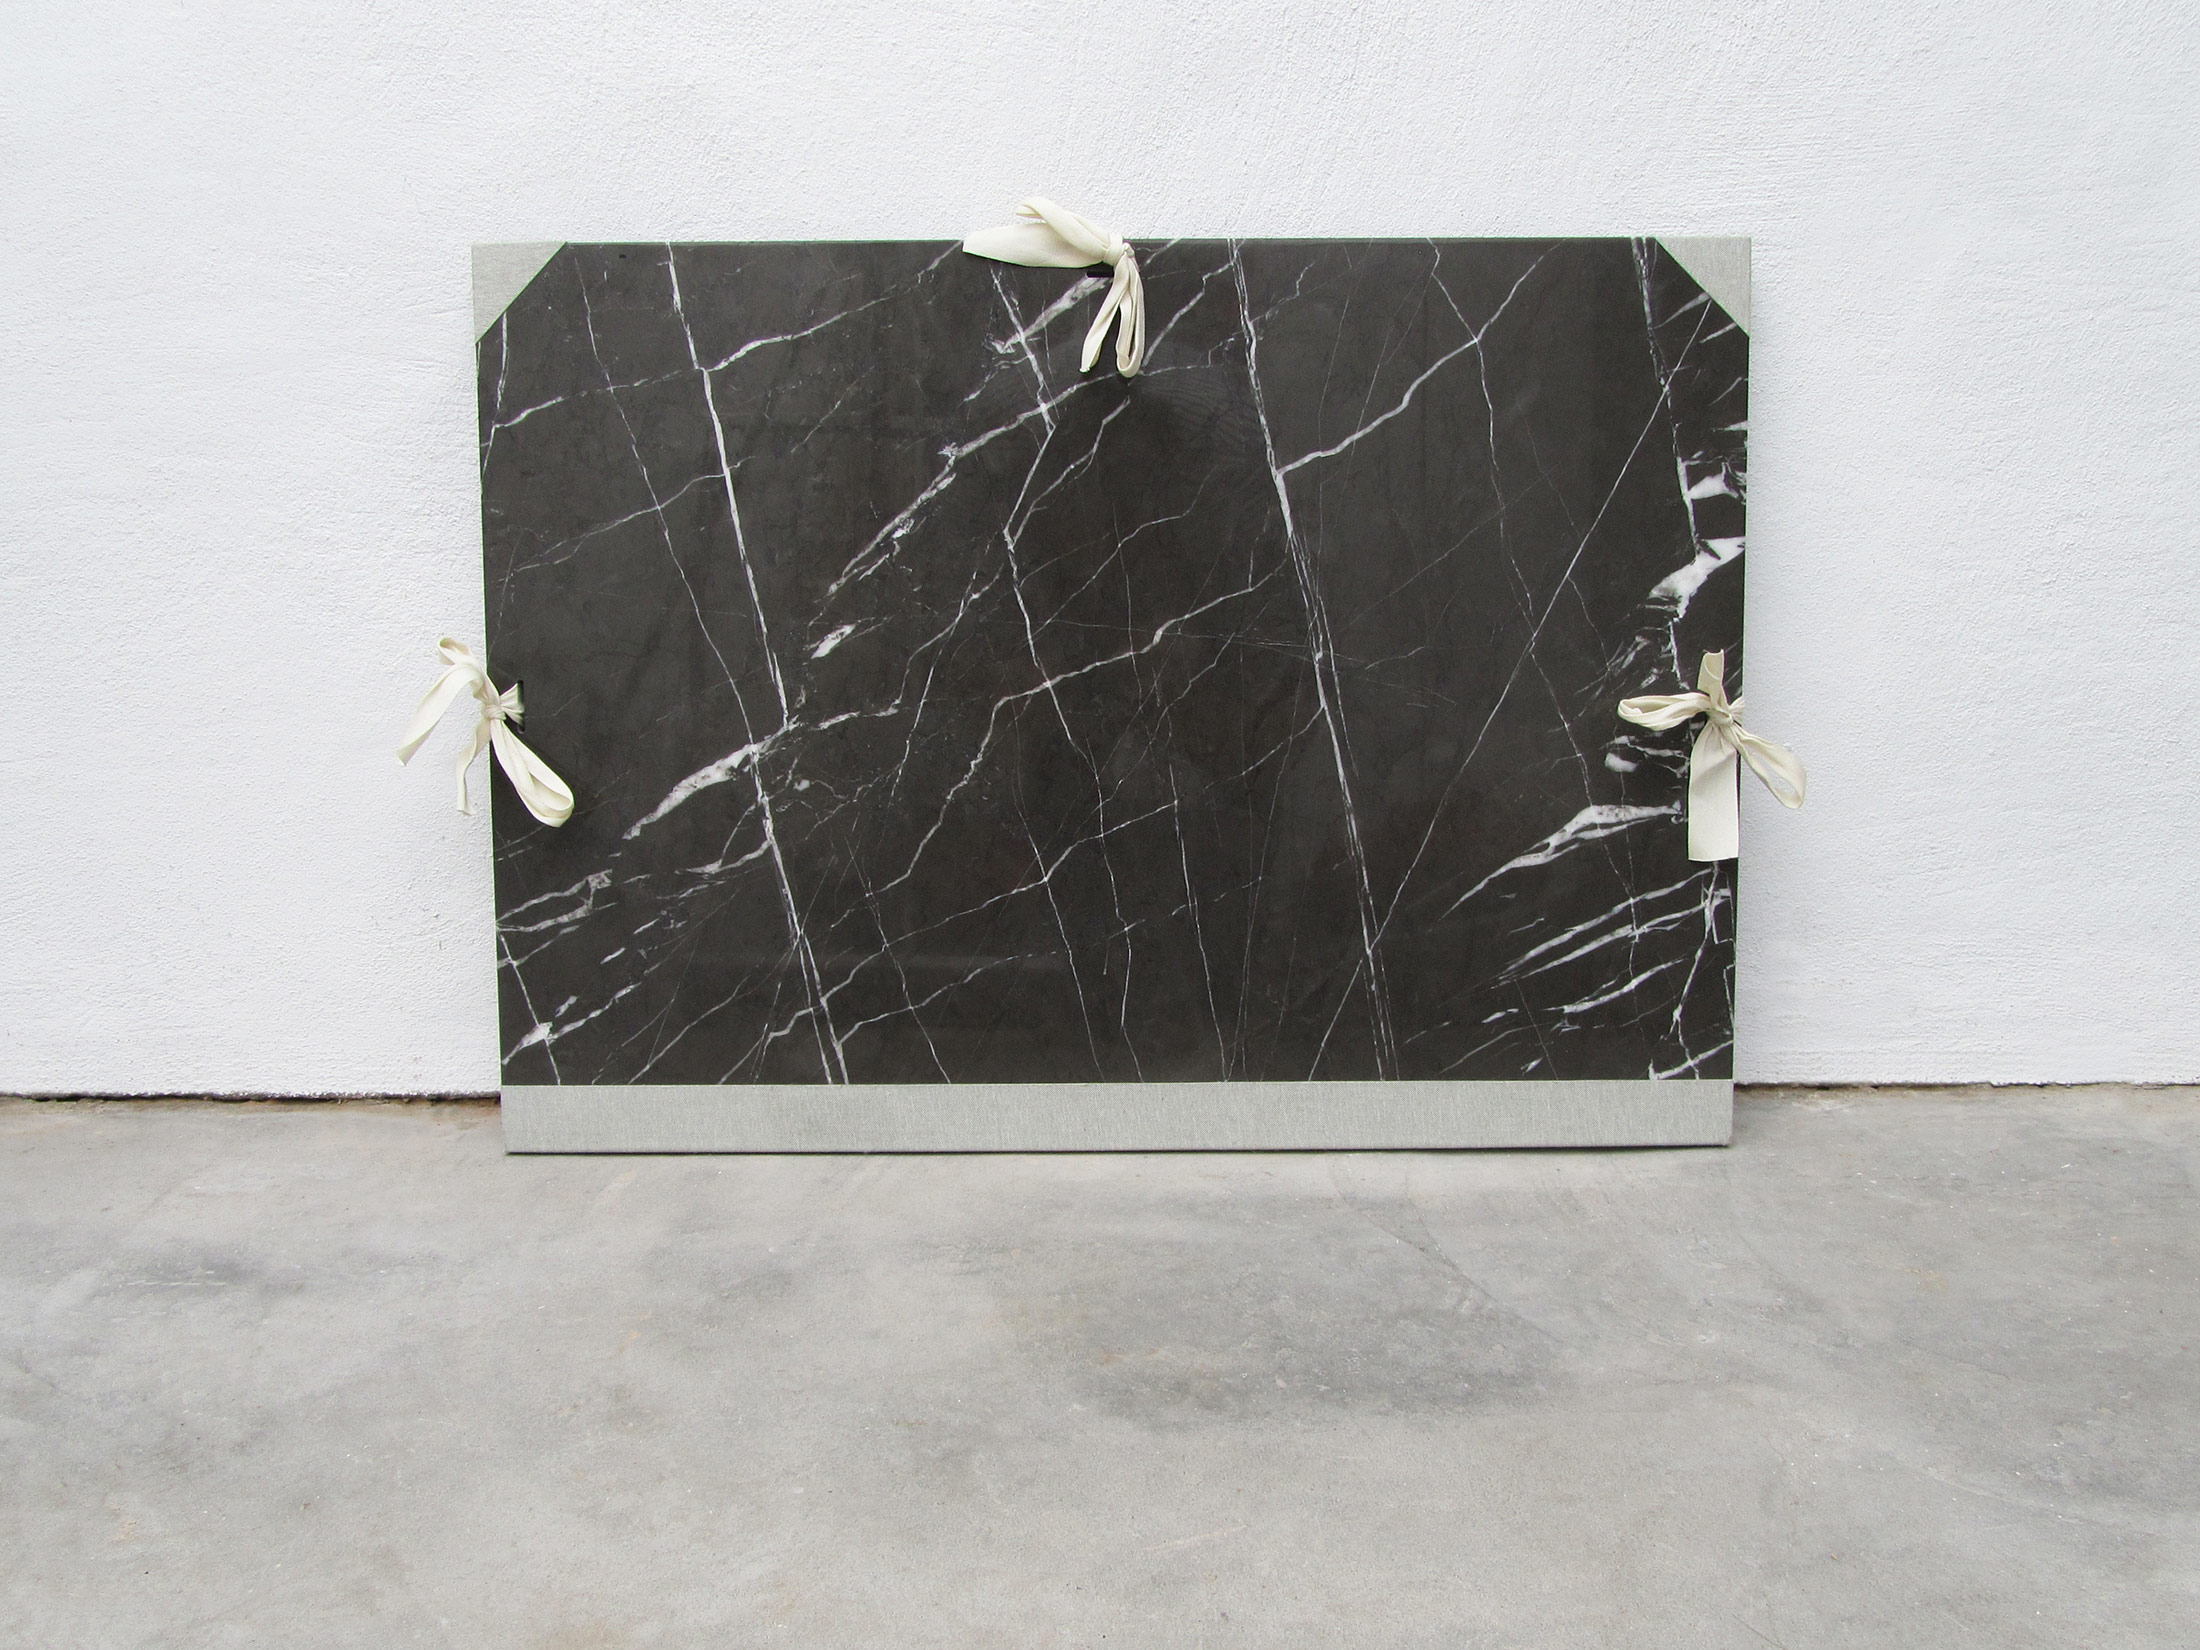 peter de meyer, contemporary artist, marble, sculpture, online viewing room, gallery raum mit licht